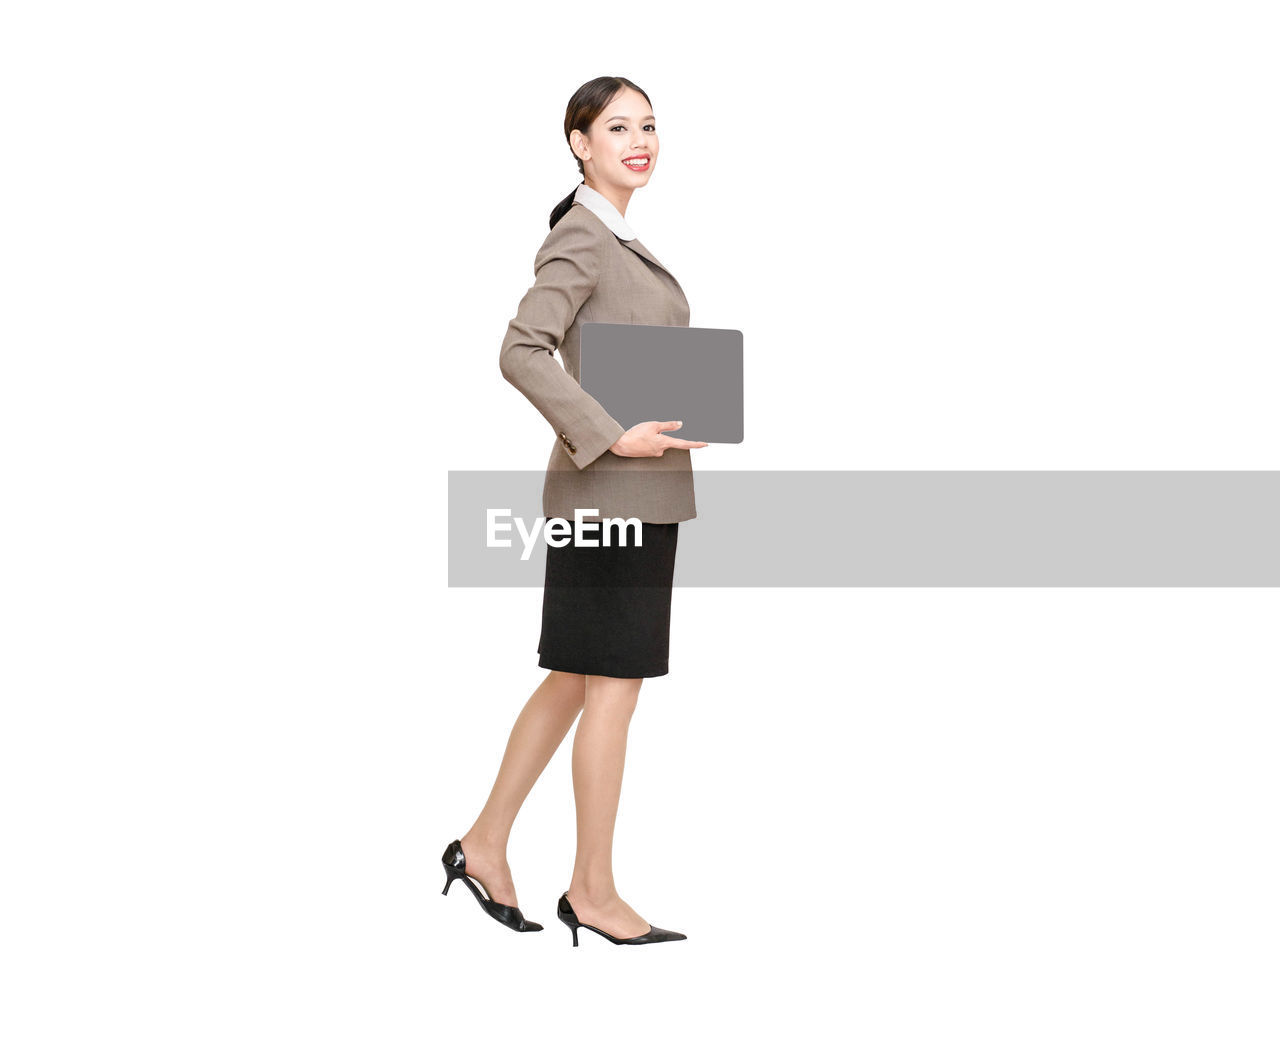 Full length portrait of businesswoman standing with laptop against white background